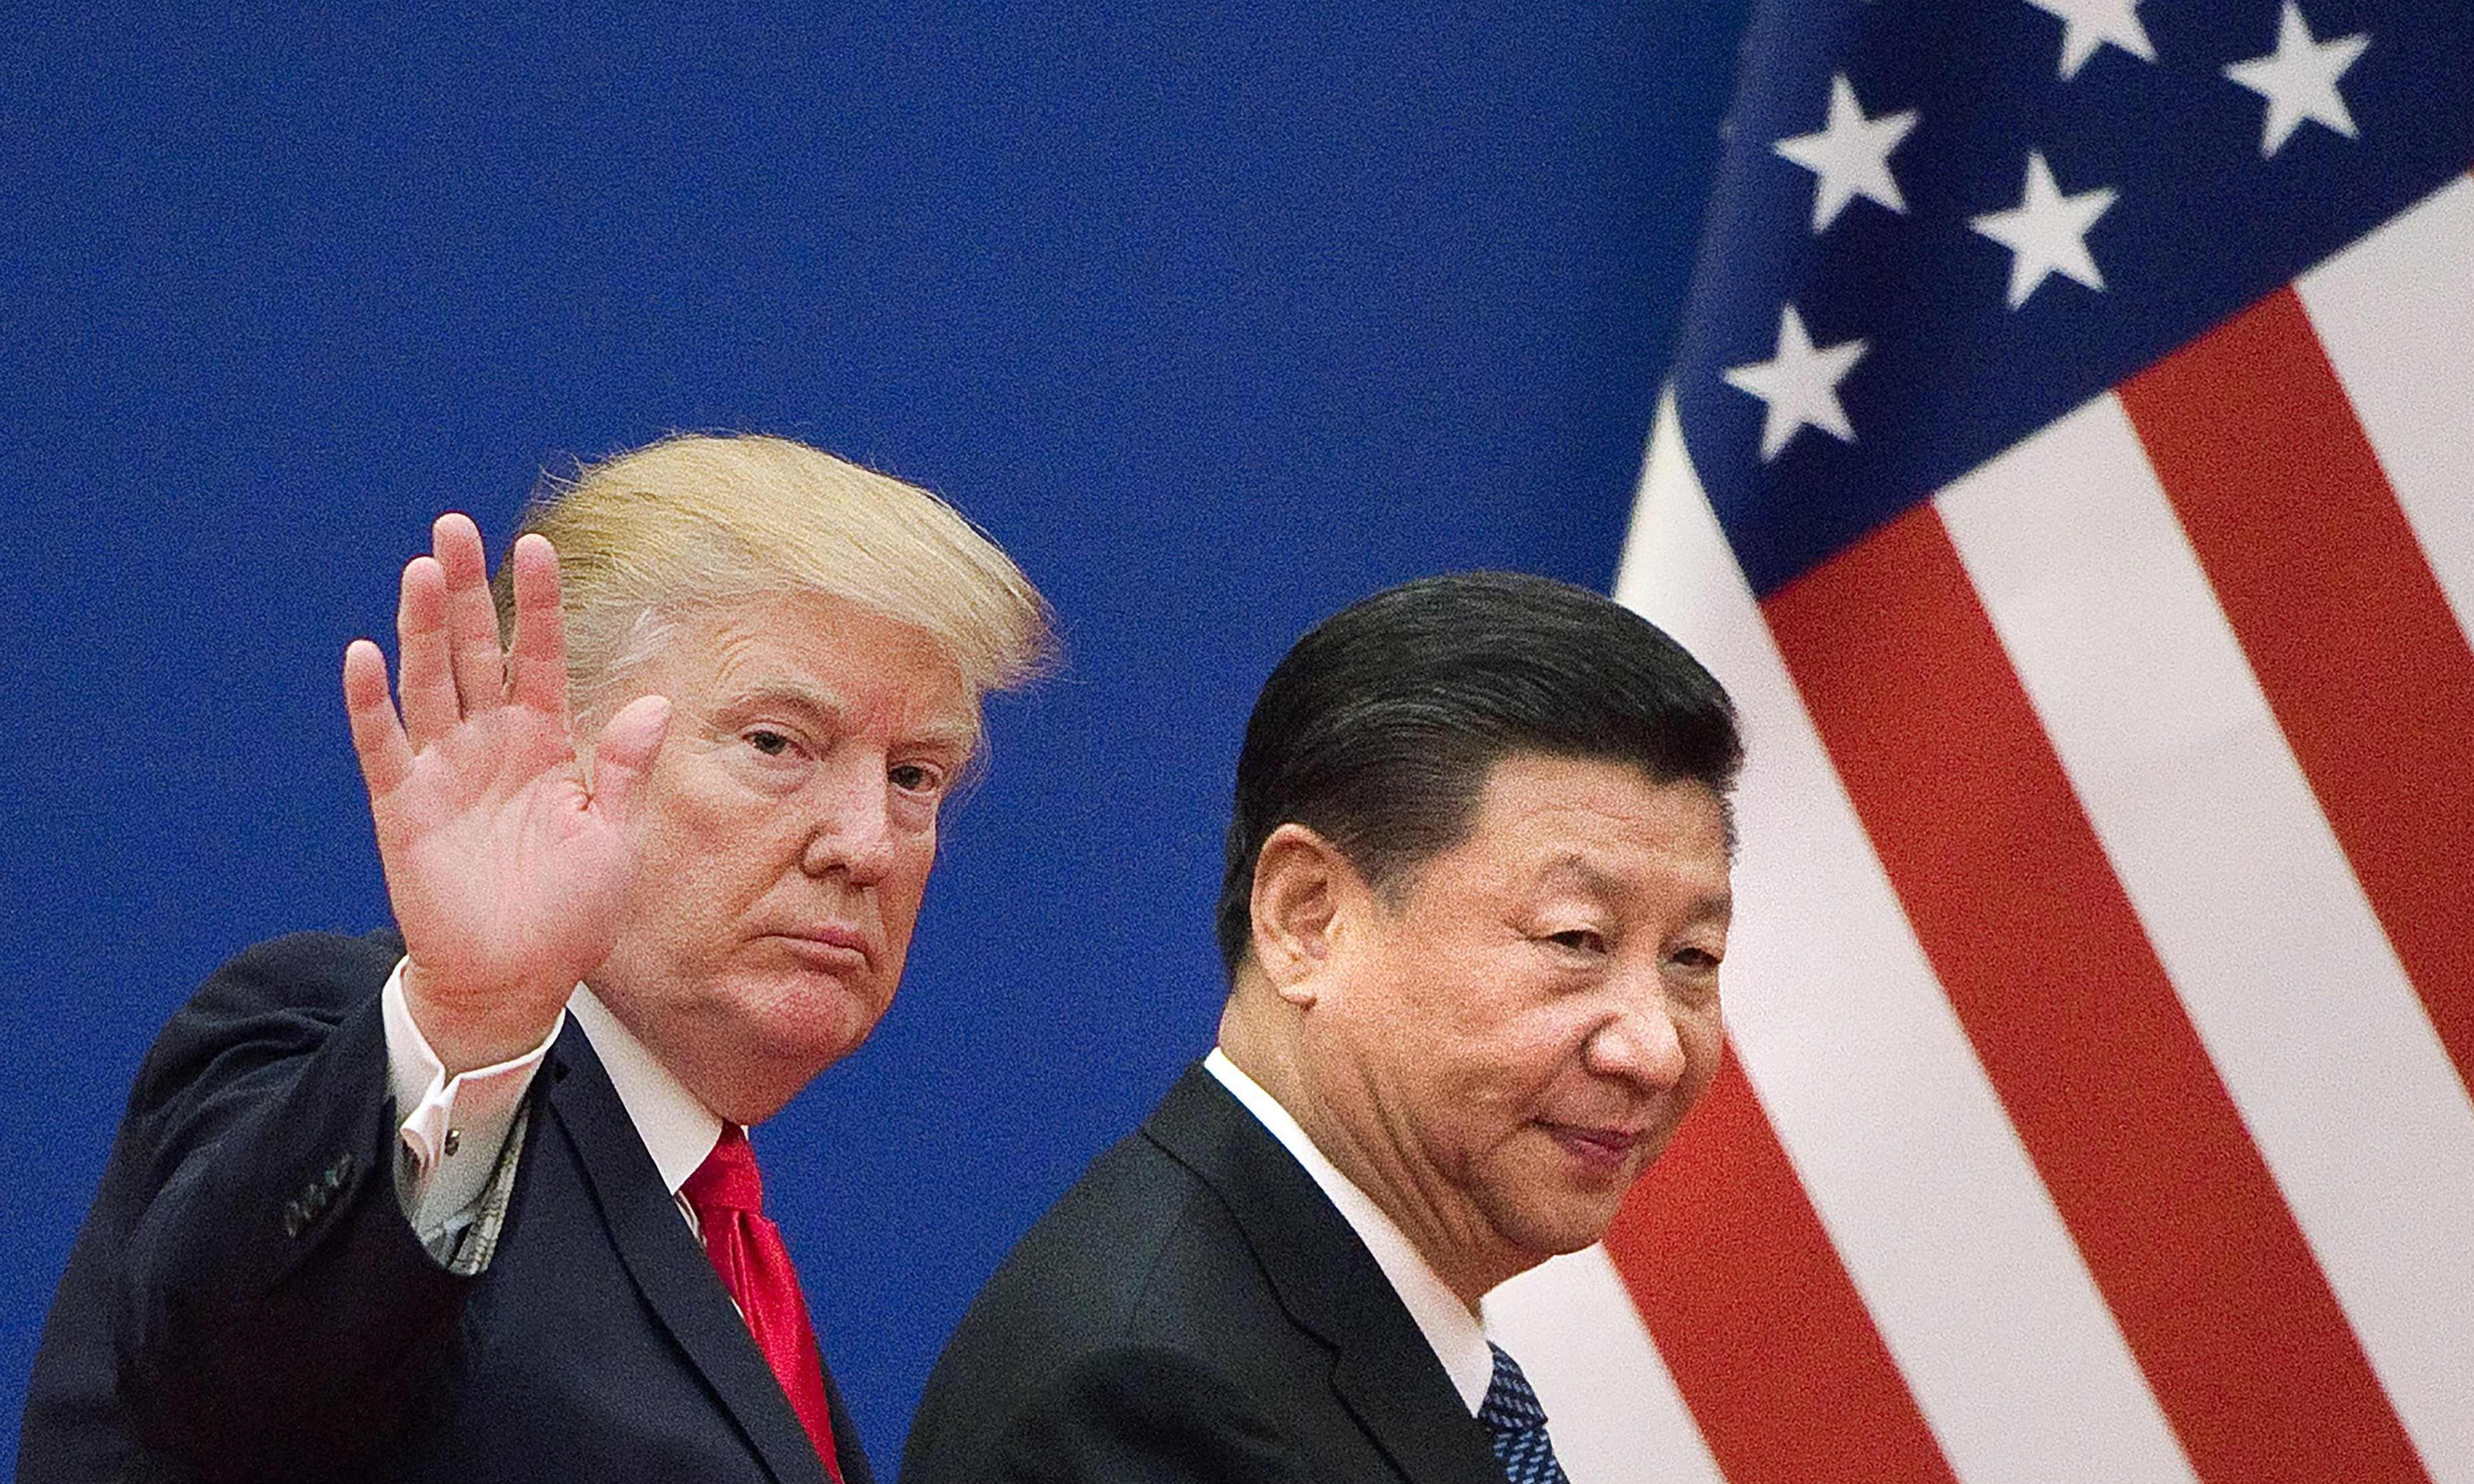 Donald Trump and Xi Jinping miss a trick over trade